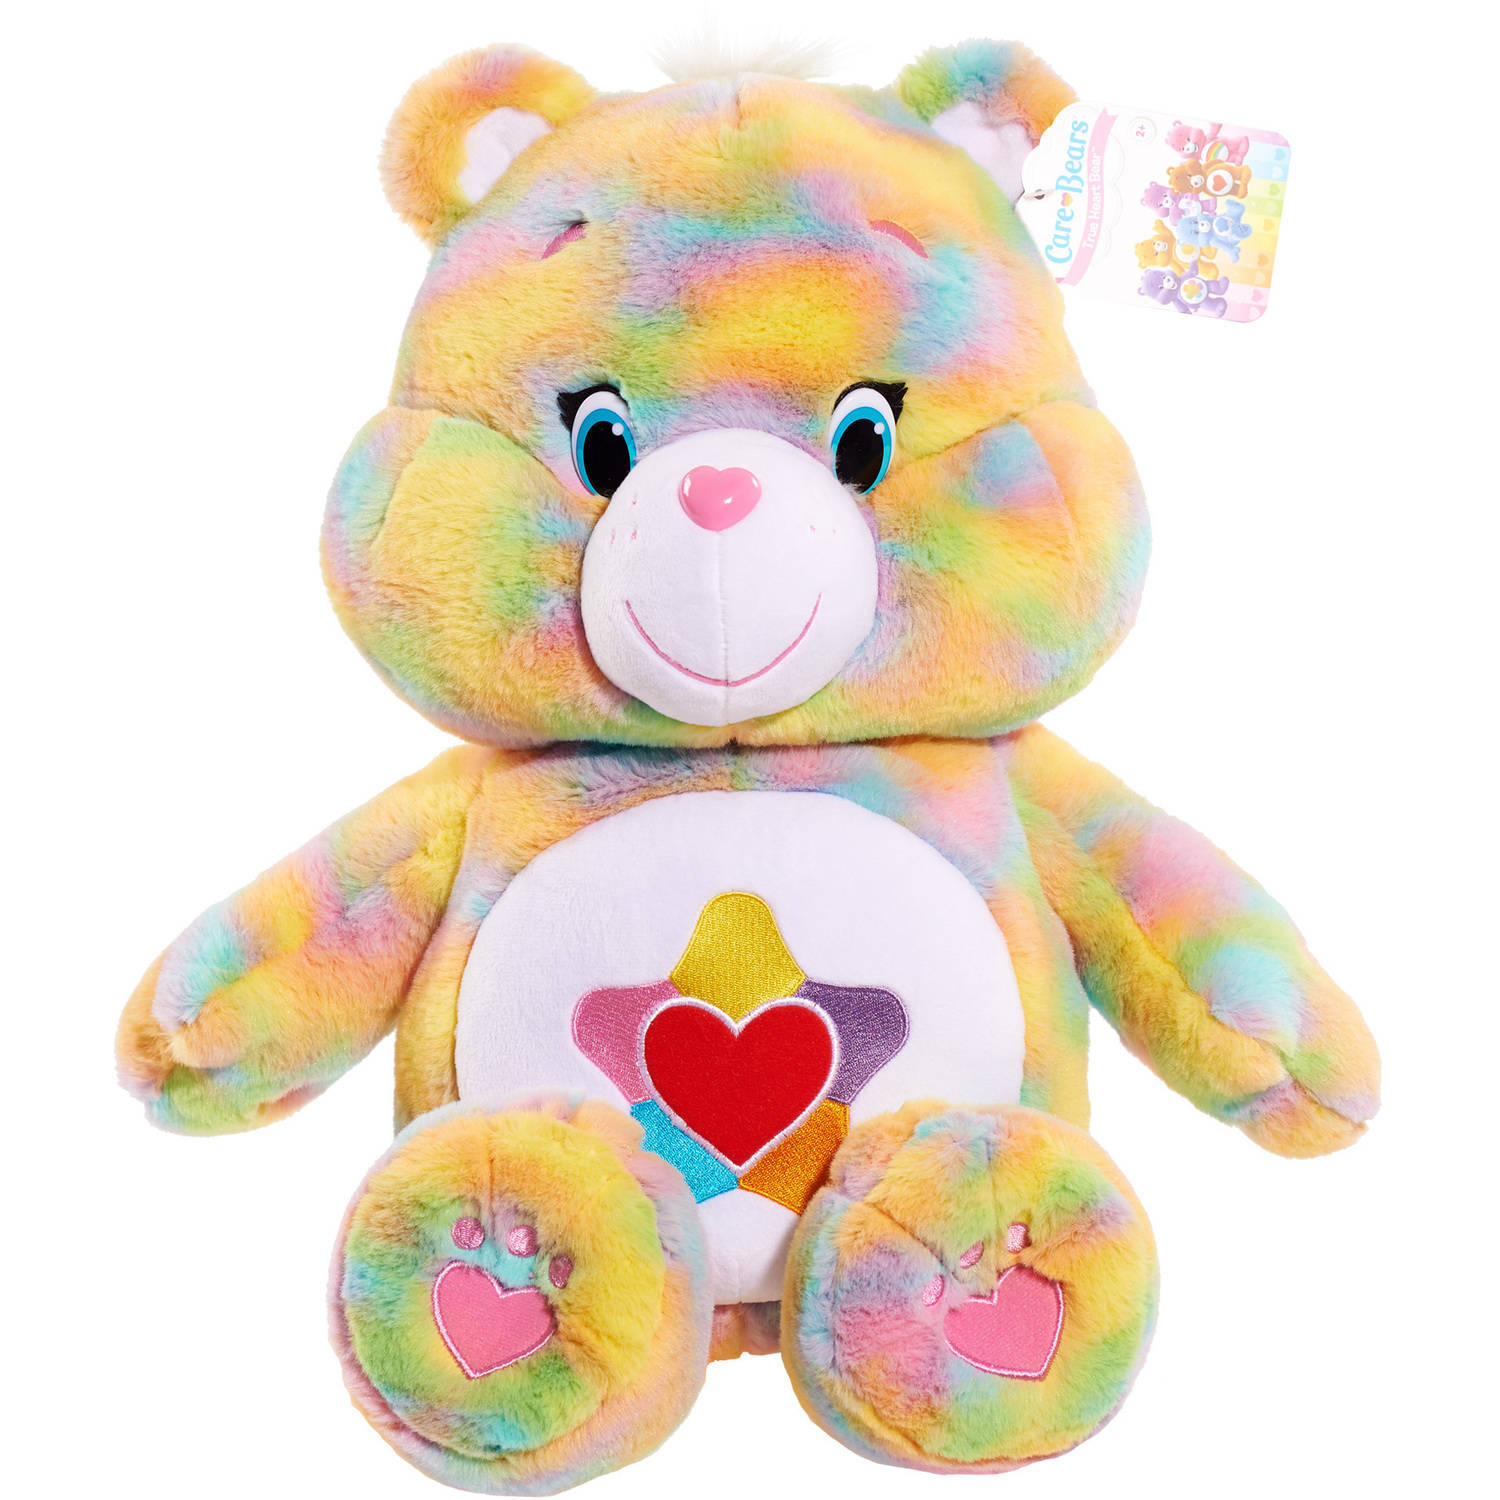 Care Bears Jumbo Plush, True Heart